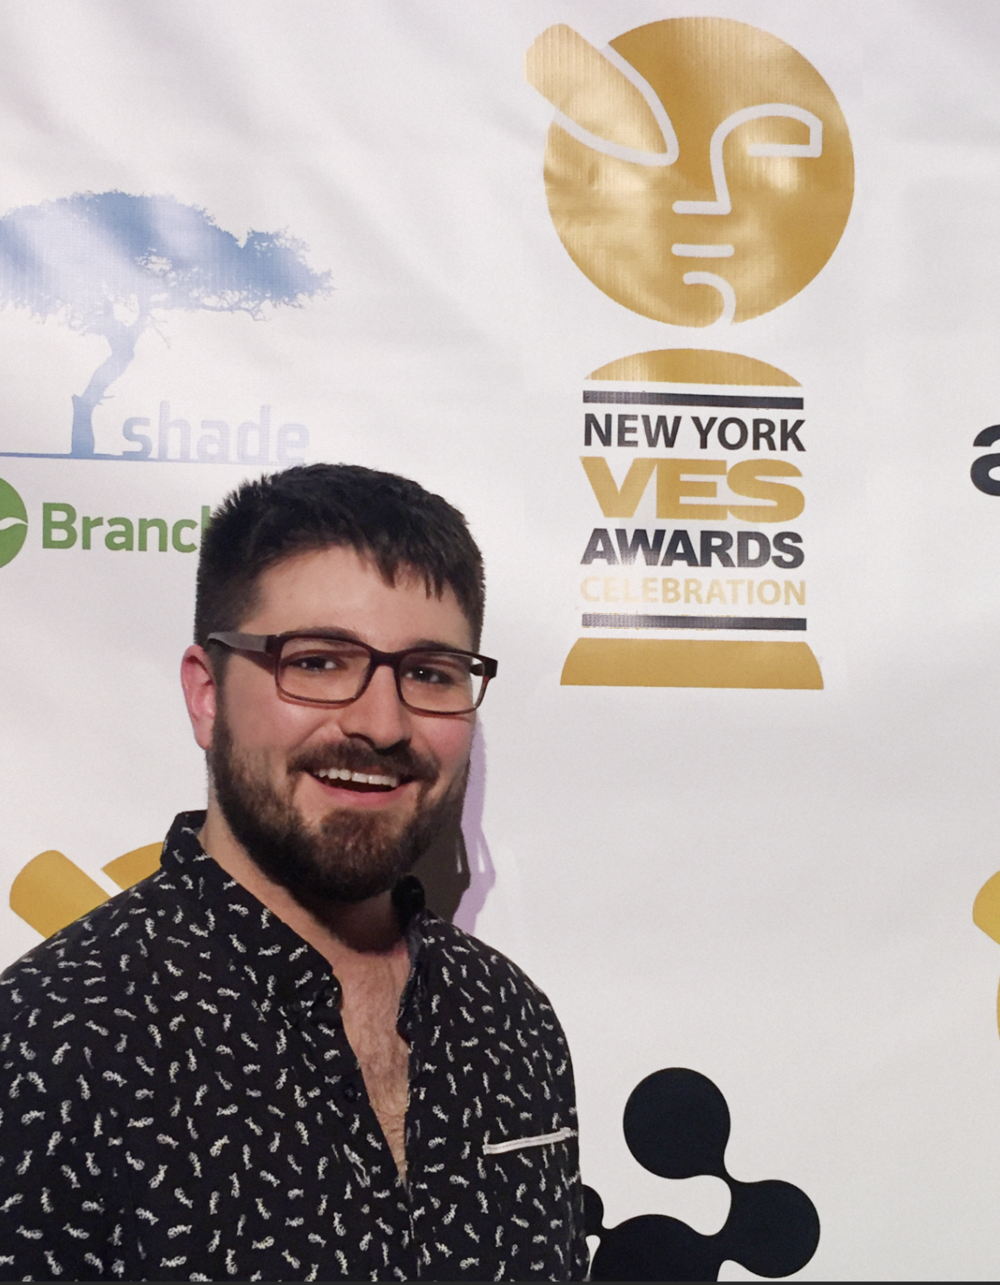 VES Awards 2018 - New York, New York